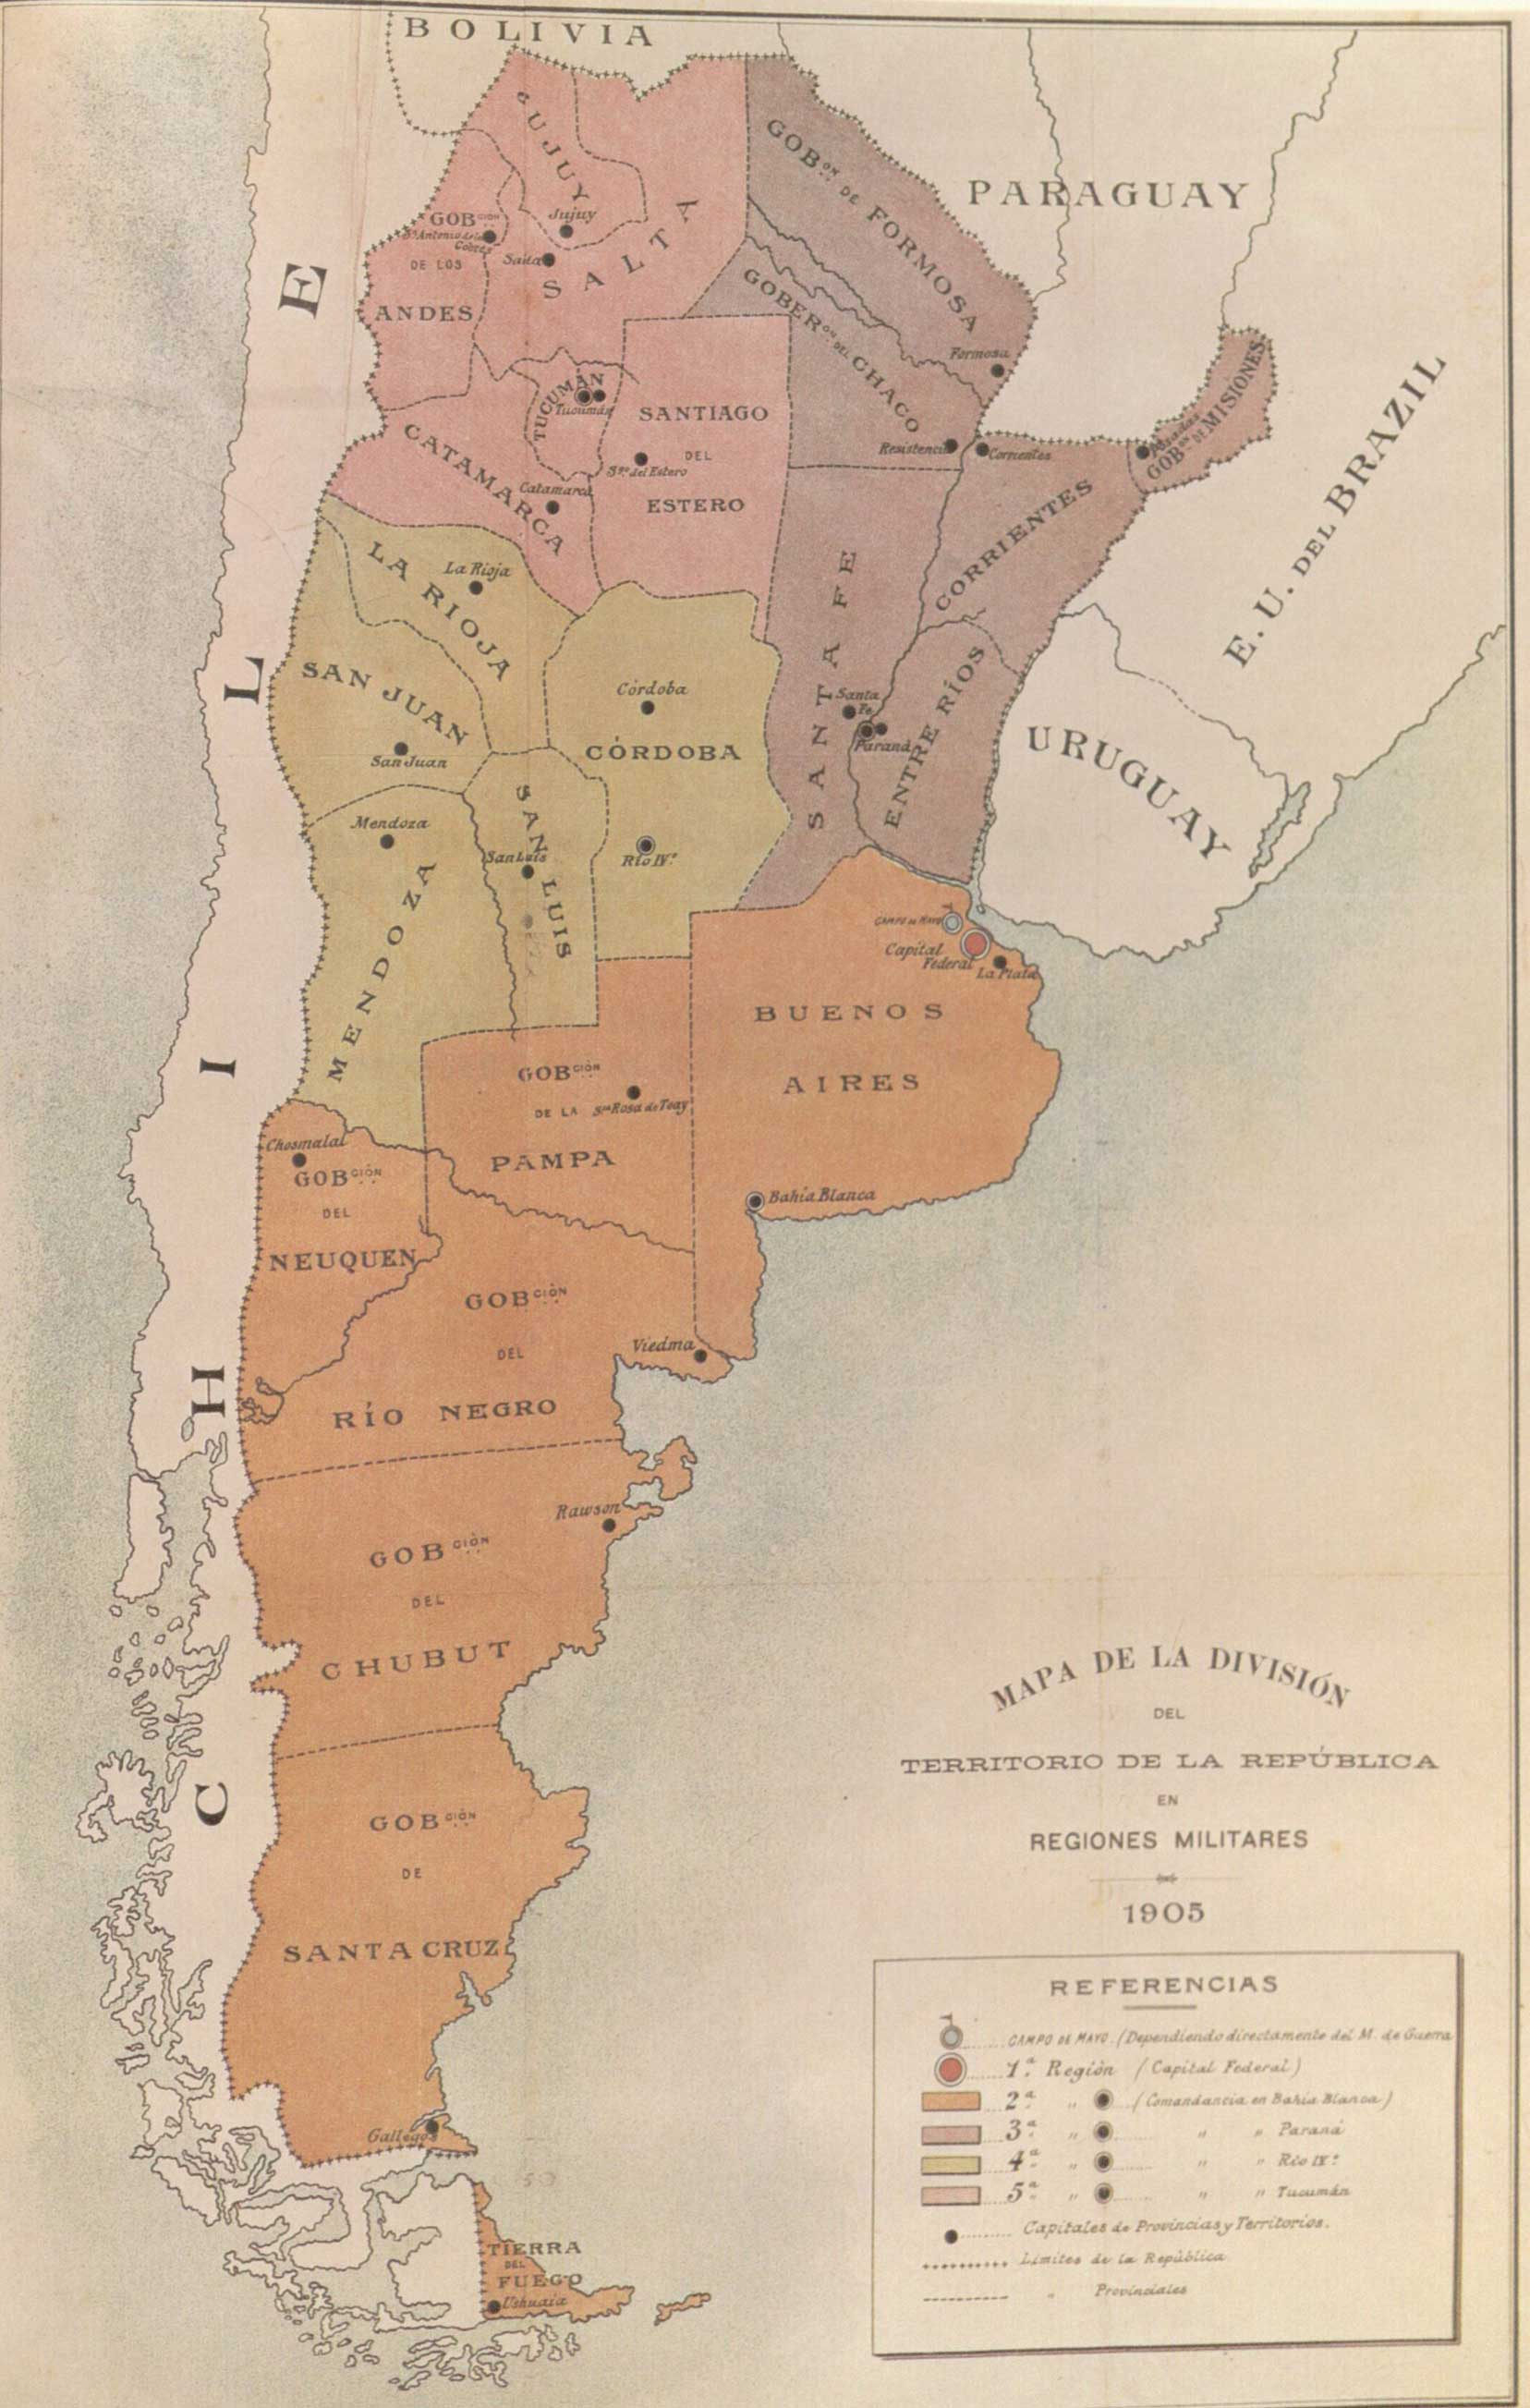 Regiones Militares Arg 1905 large map